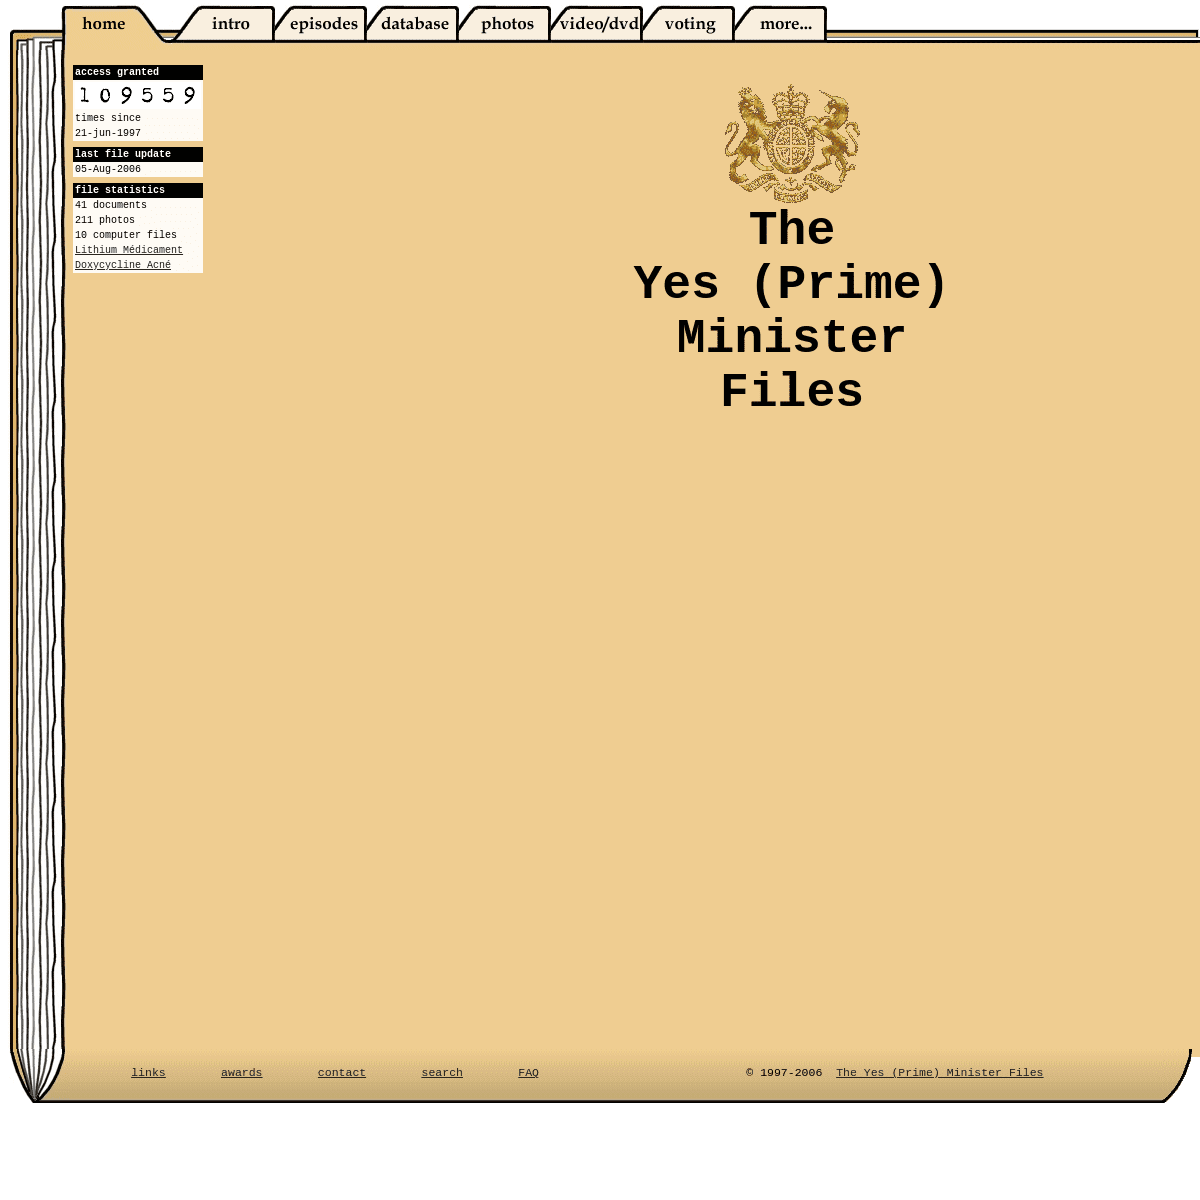 The Yes (Prime) Minister Files - For Your Eyes Only